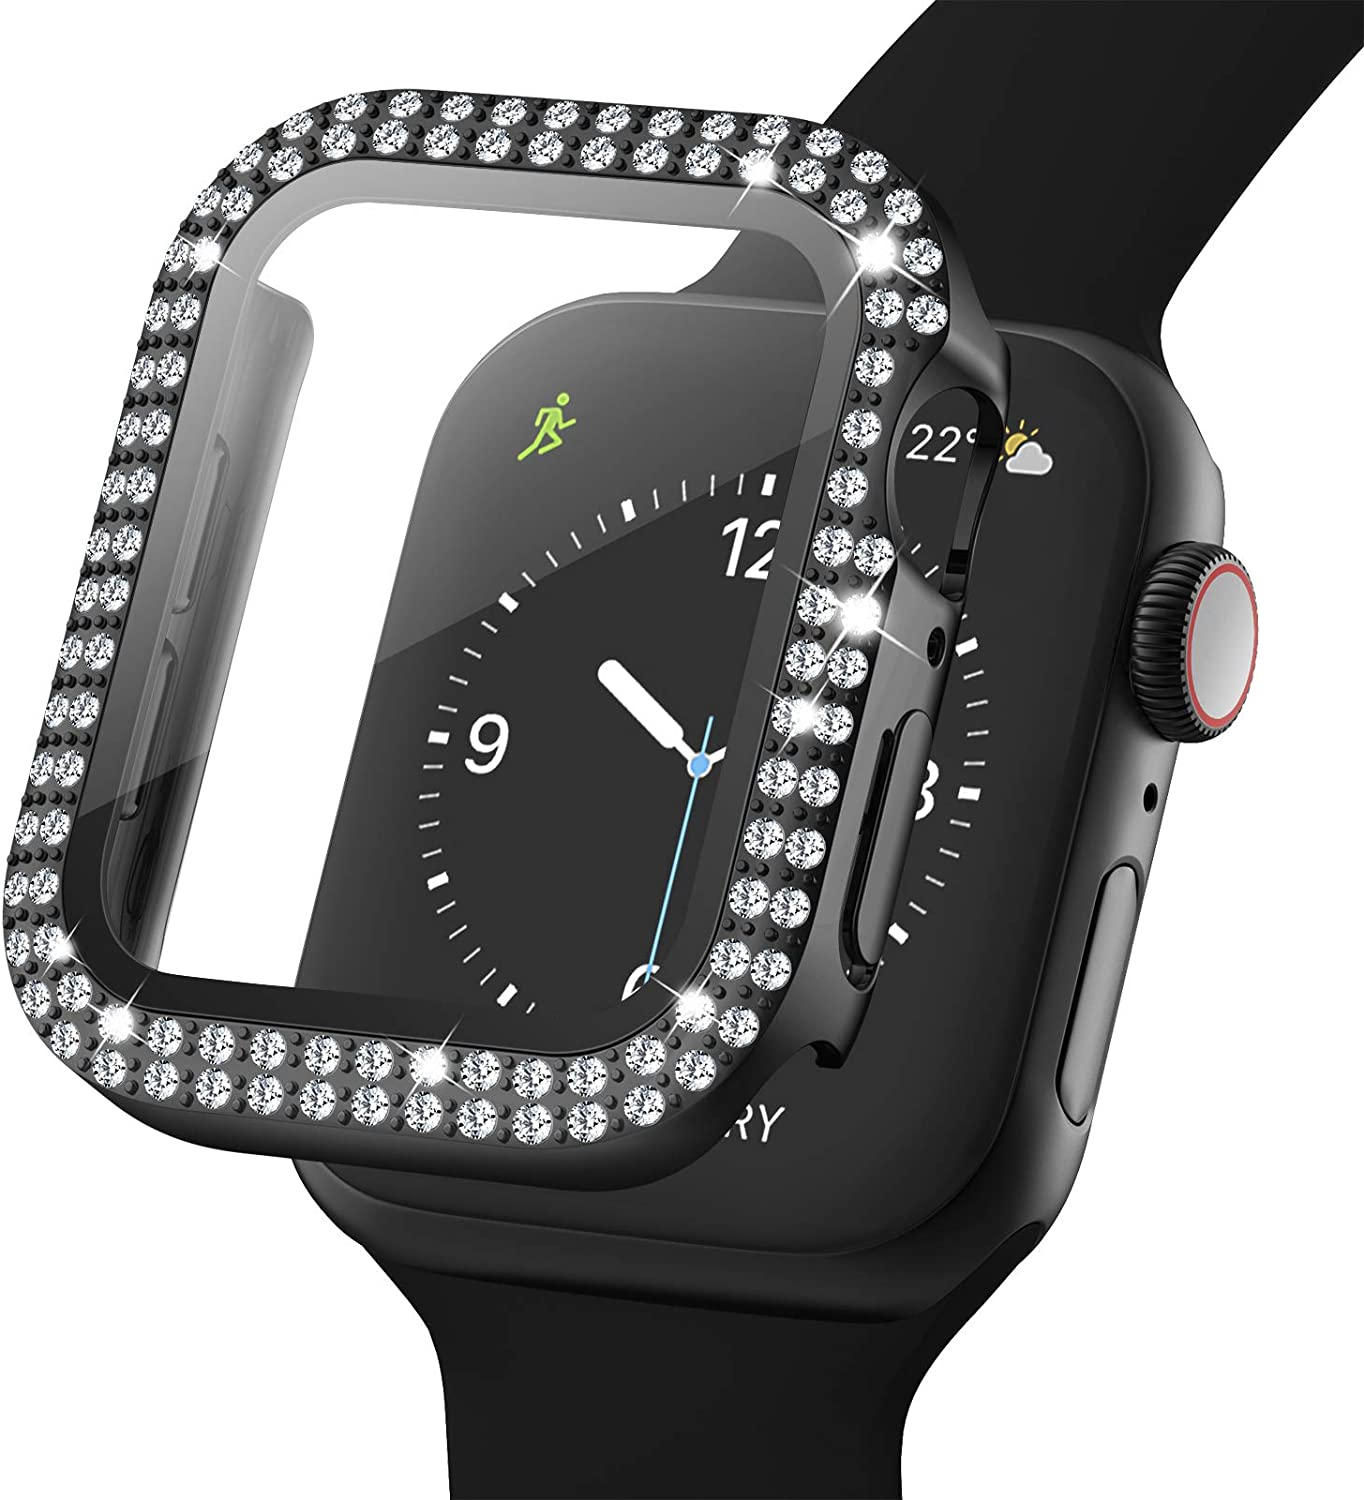 Adepoy Bling Case for Apple Watch 38mm Series 3/2/1 with Tempered Glass Screen Protector, Double Diamond Rhinestone All-Around Ultra-Thin Bumper Protective Cover for iWatch Women Girls(black)